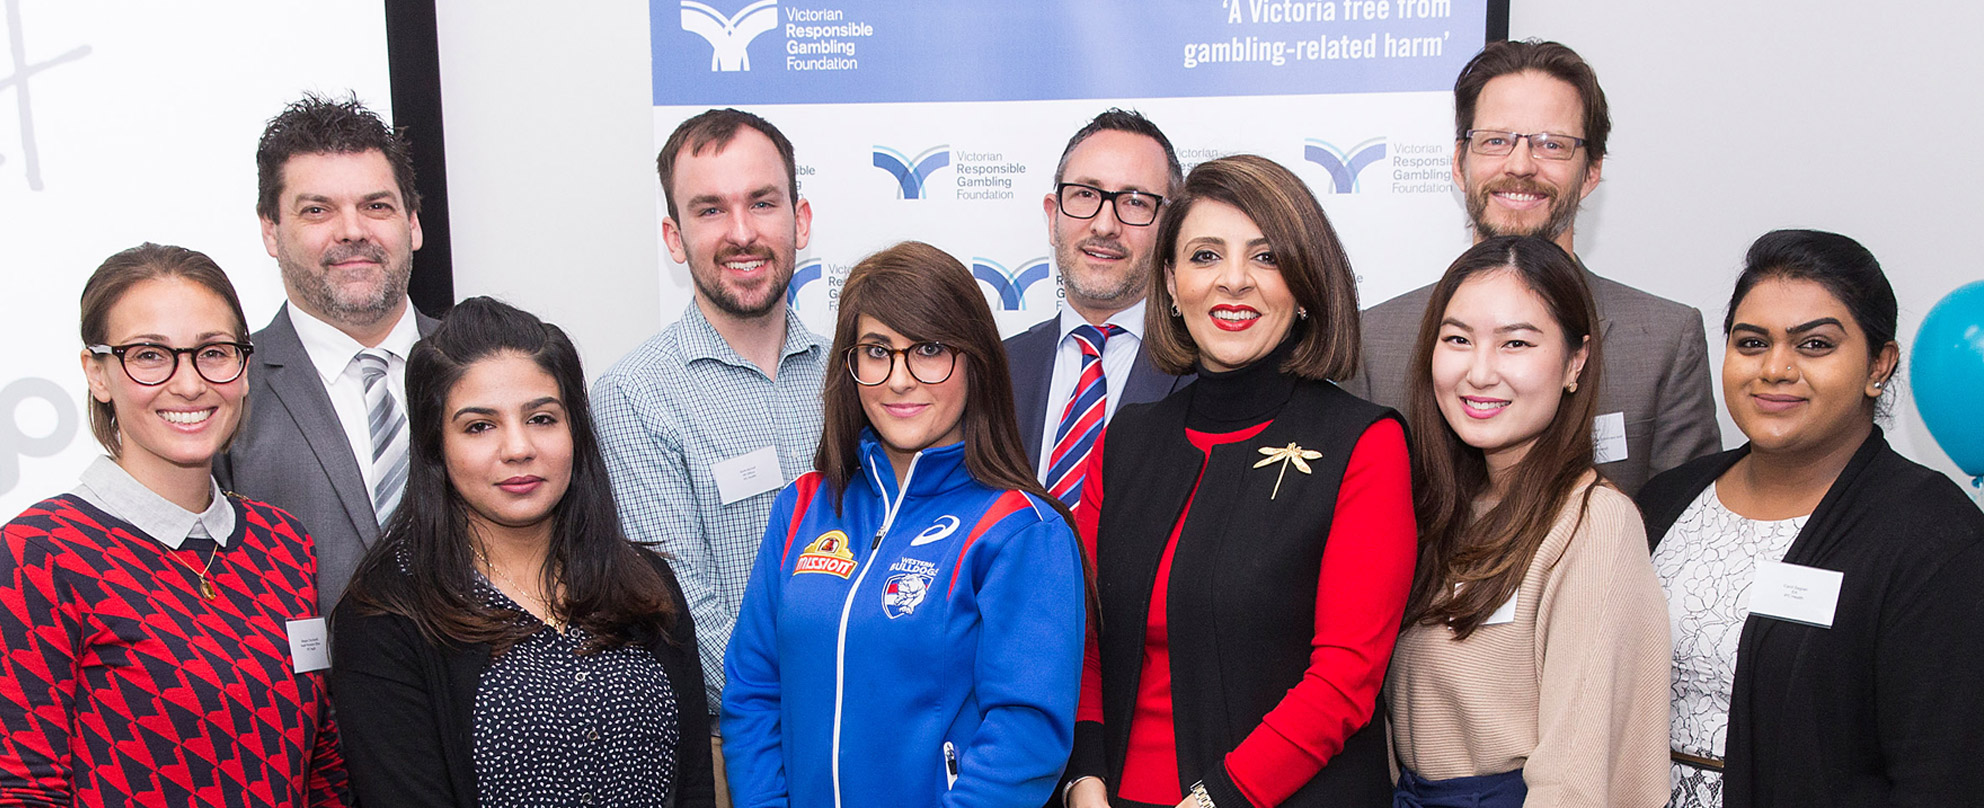 Minister Marlene Kairouz (third from right, front), Catherine Dell'Aquila (Sons of the West, fourth from right, front), Nathan Villiers (Brimbank City Council, first right, back), Alex Johnstone (CEO of IPC Health, second from right, back) and Craig Swift (Acting CEO of the Victorian Responsible Gambling Foundation, first left, back) with IPC Health staff at the launch of the 14 prevention projects, photo: Paul Jeffers